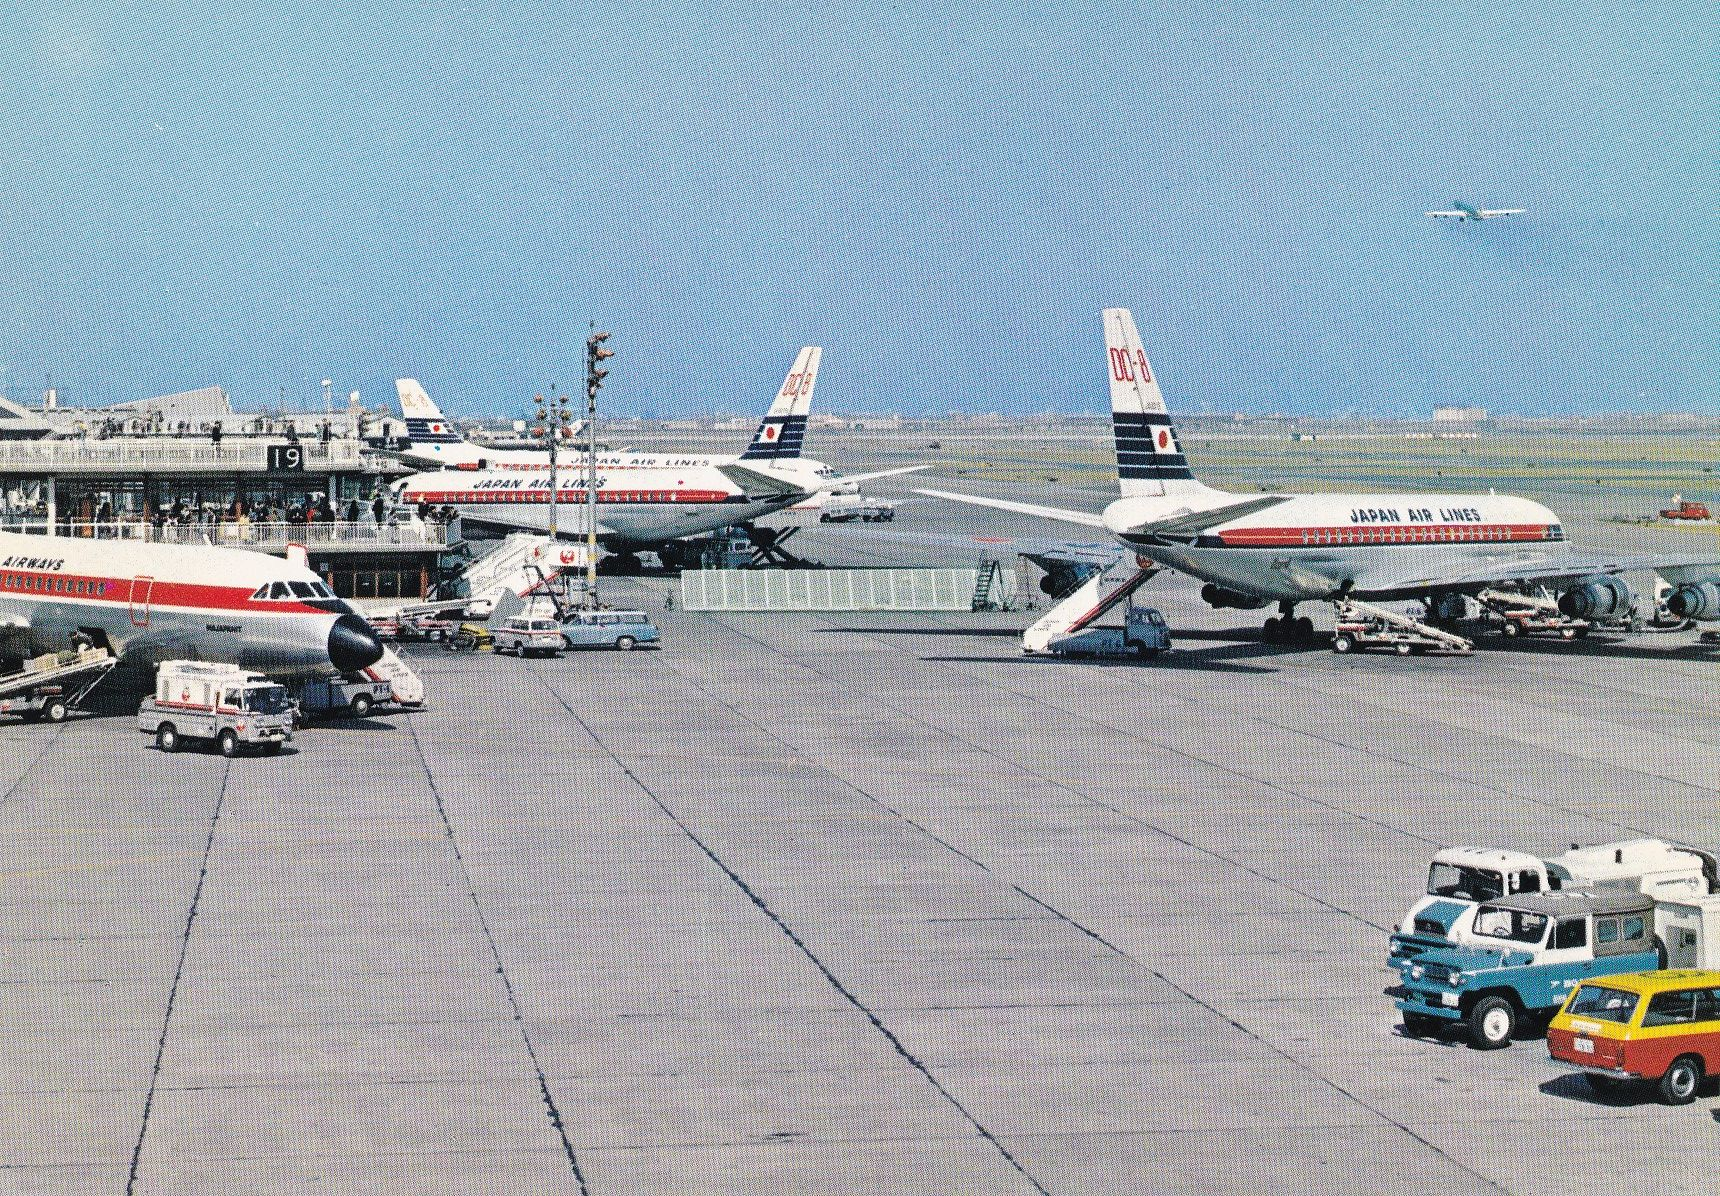 Pin by Tommy on JAL JAPAN AIR LINES in 2020 Vintage